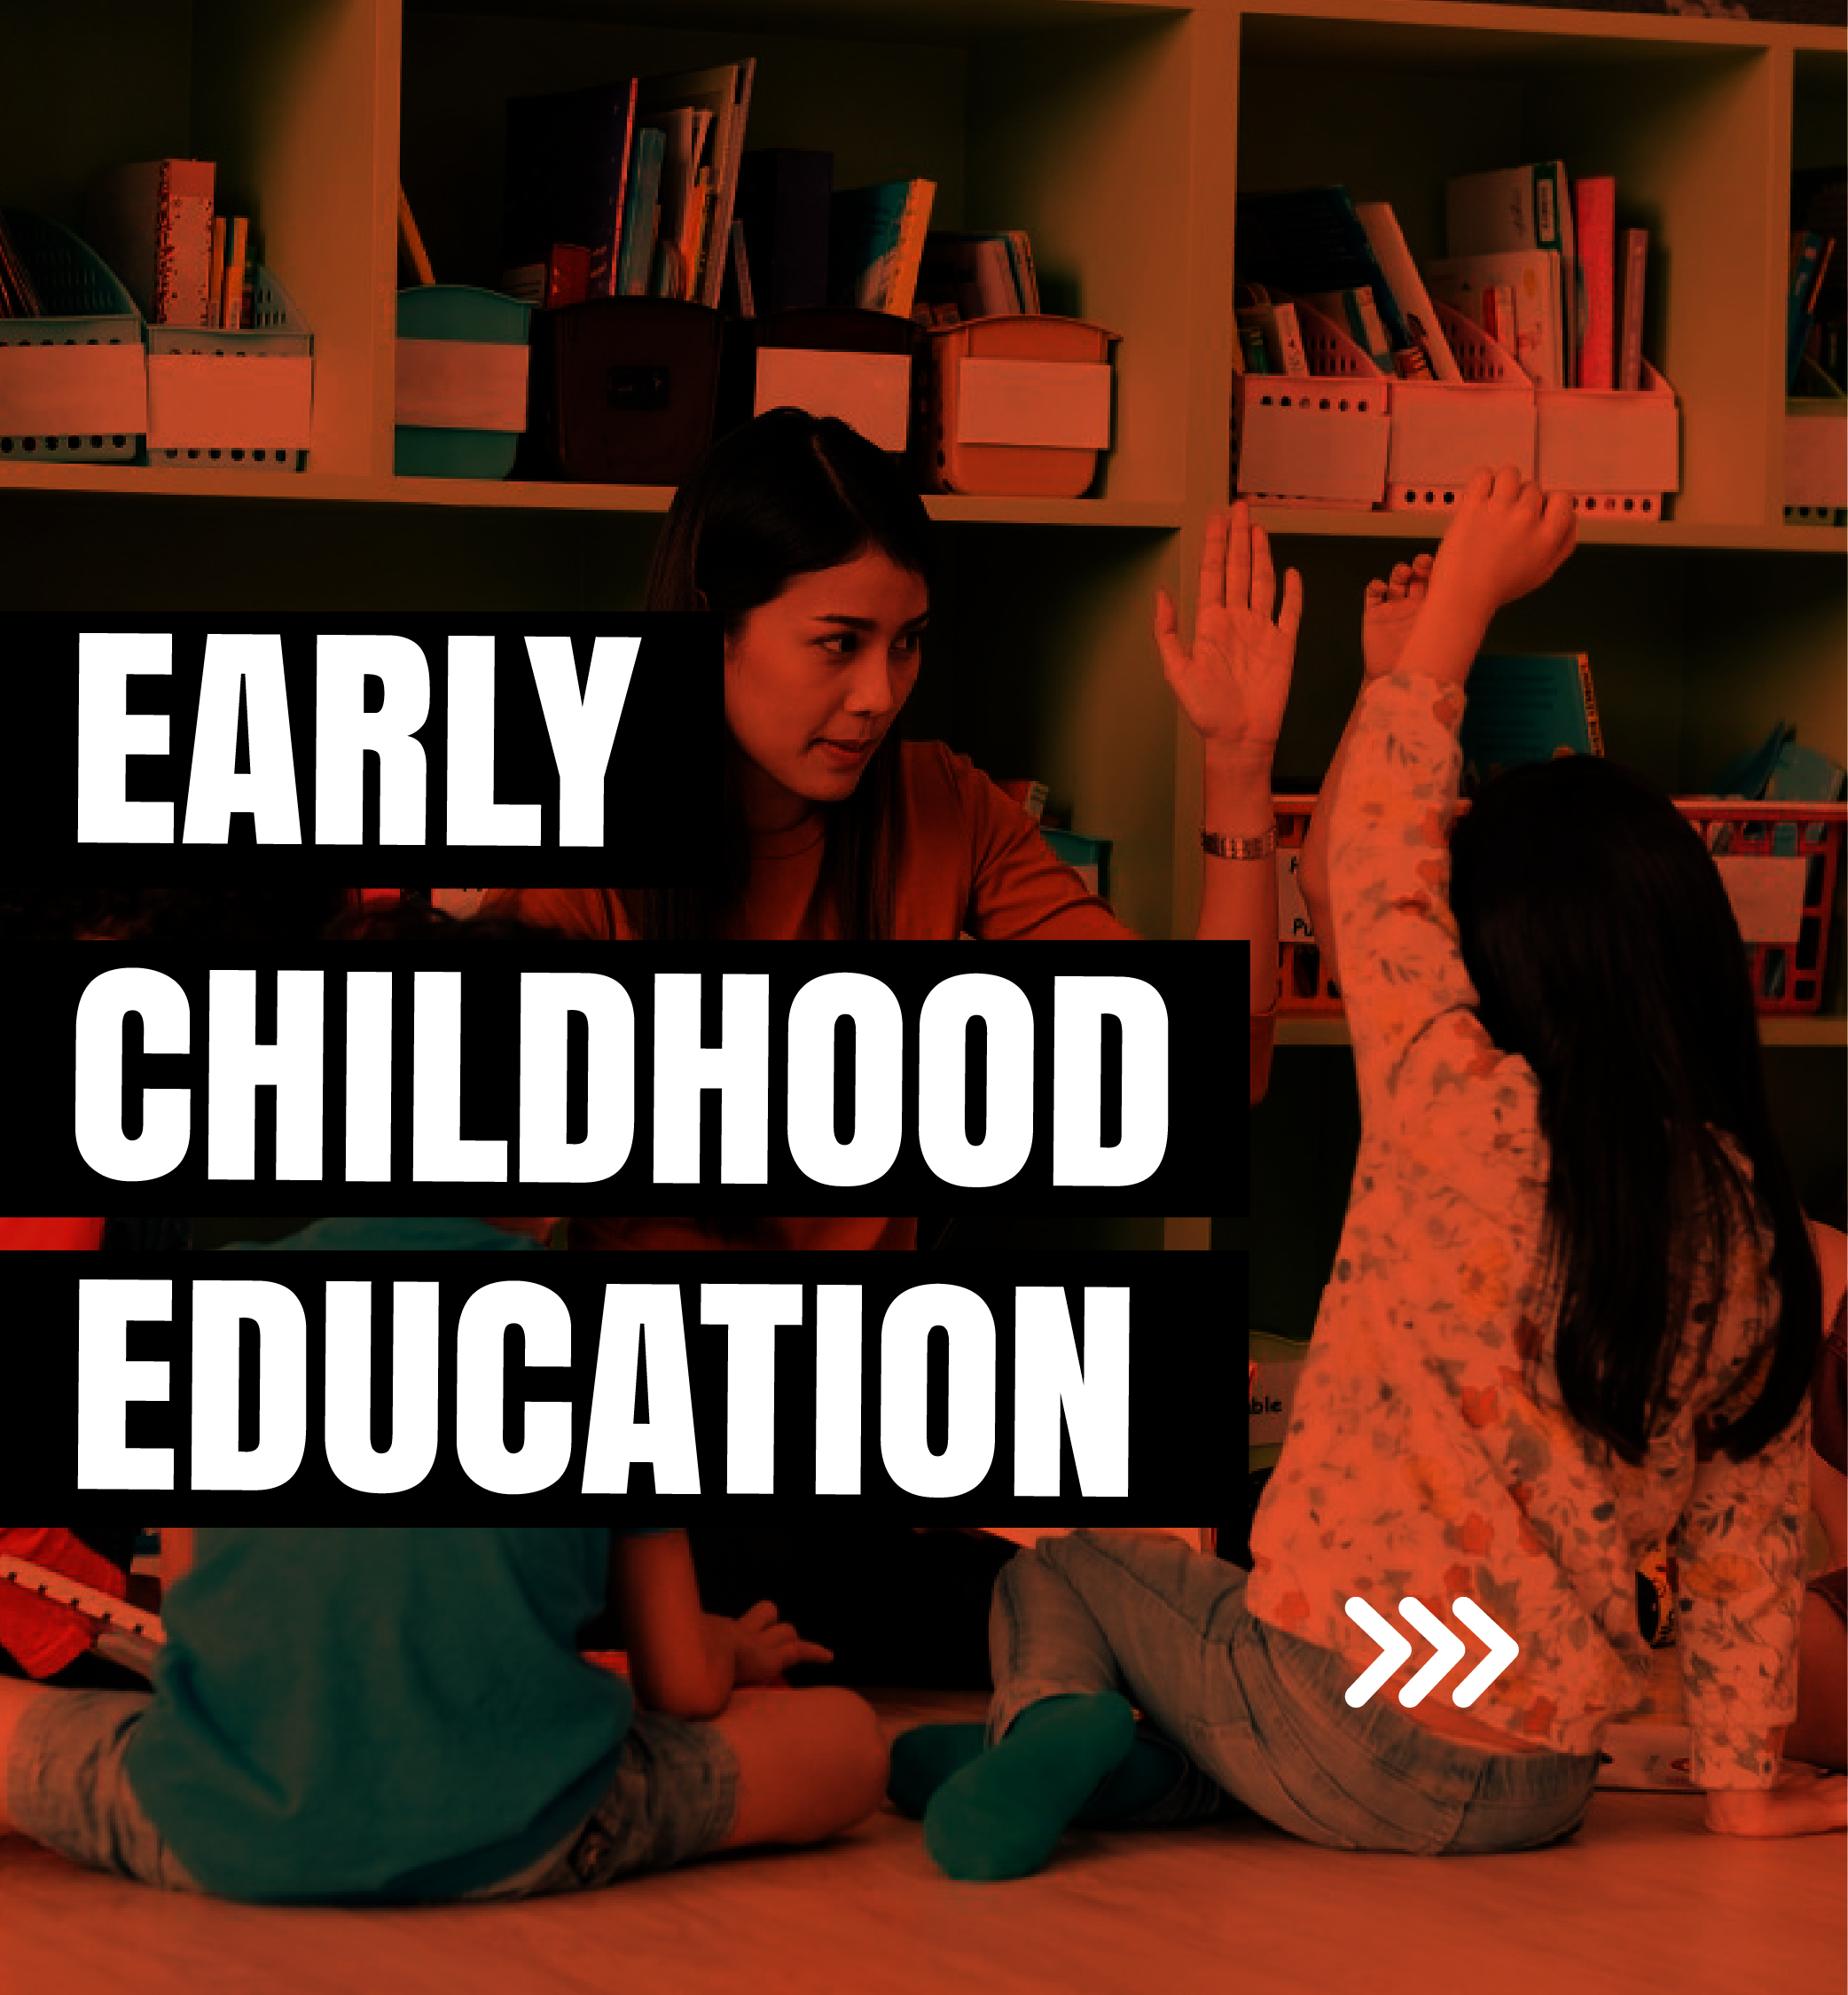 Early Childhood Education-01